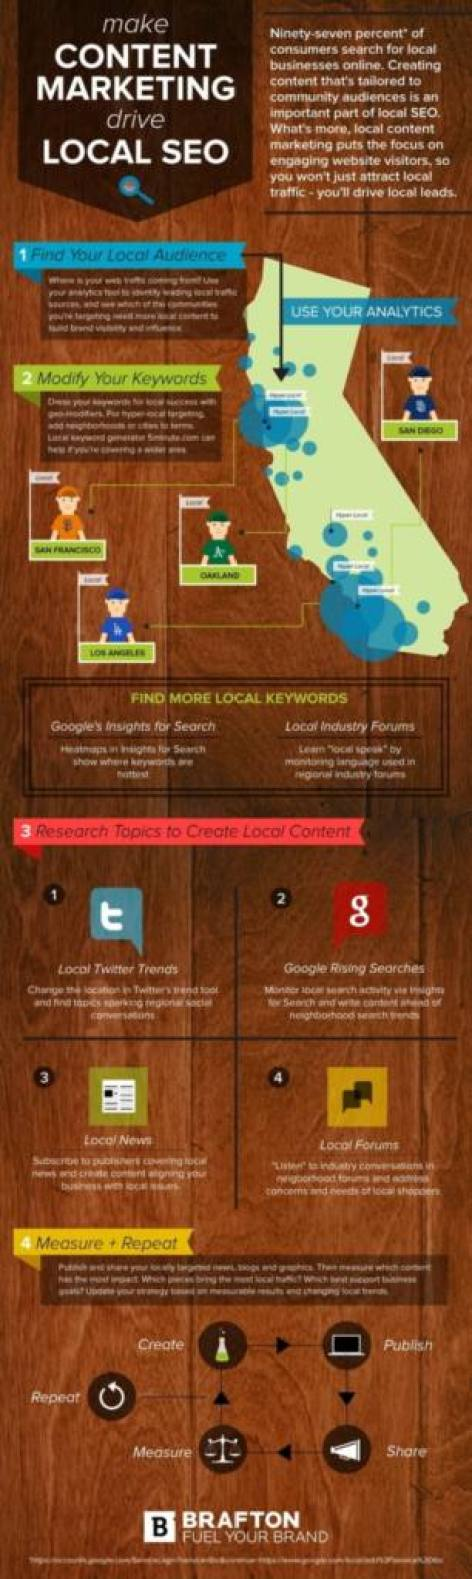 Content Marketing helps Local Search SEO